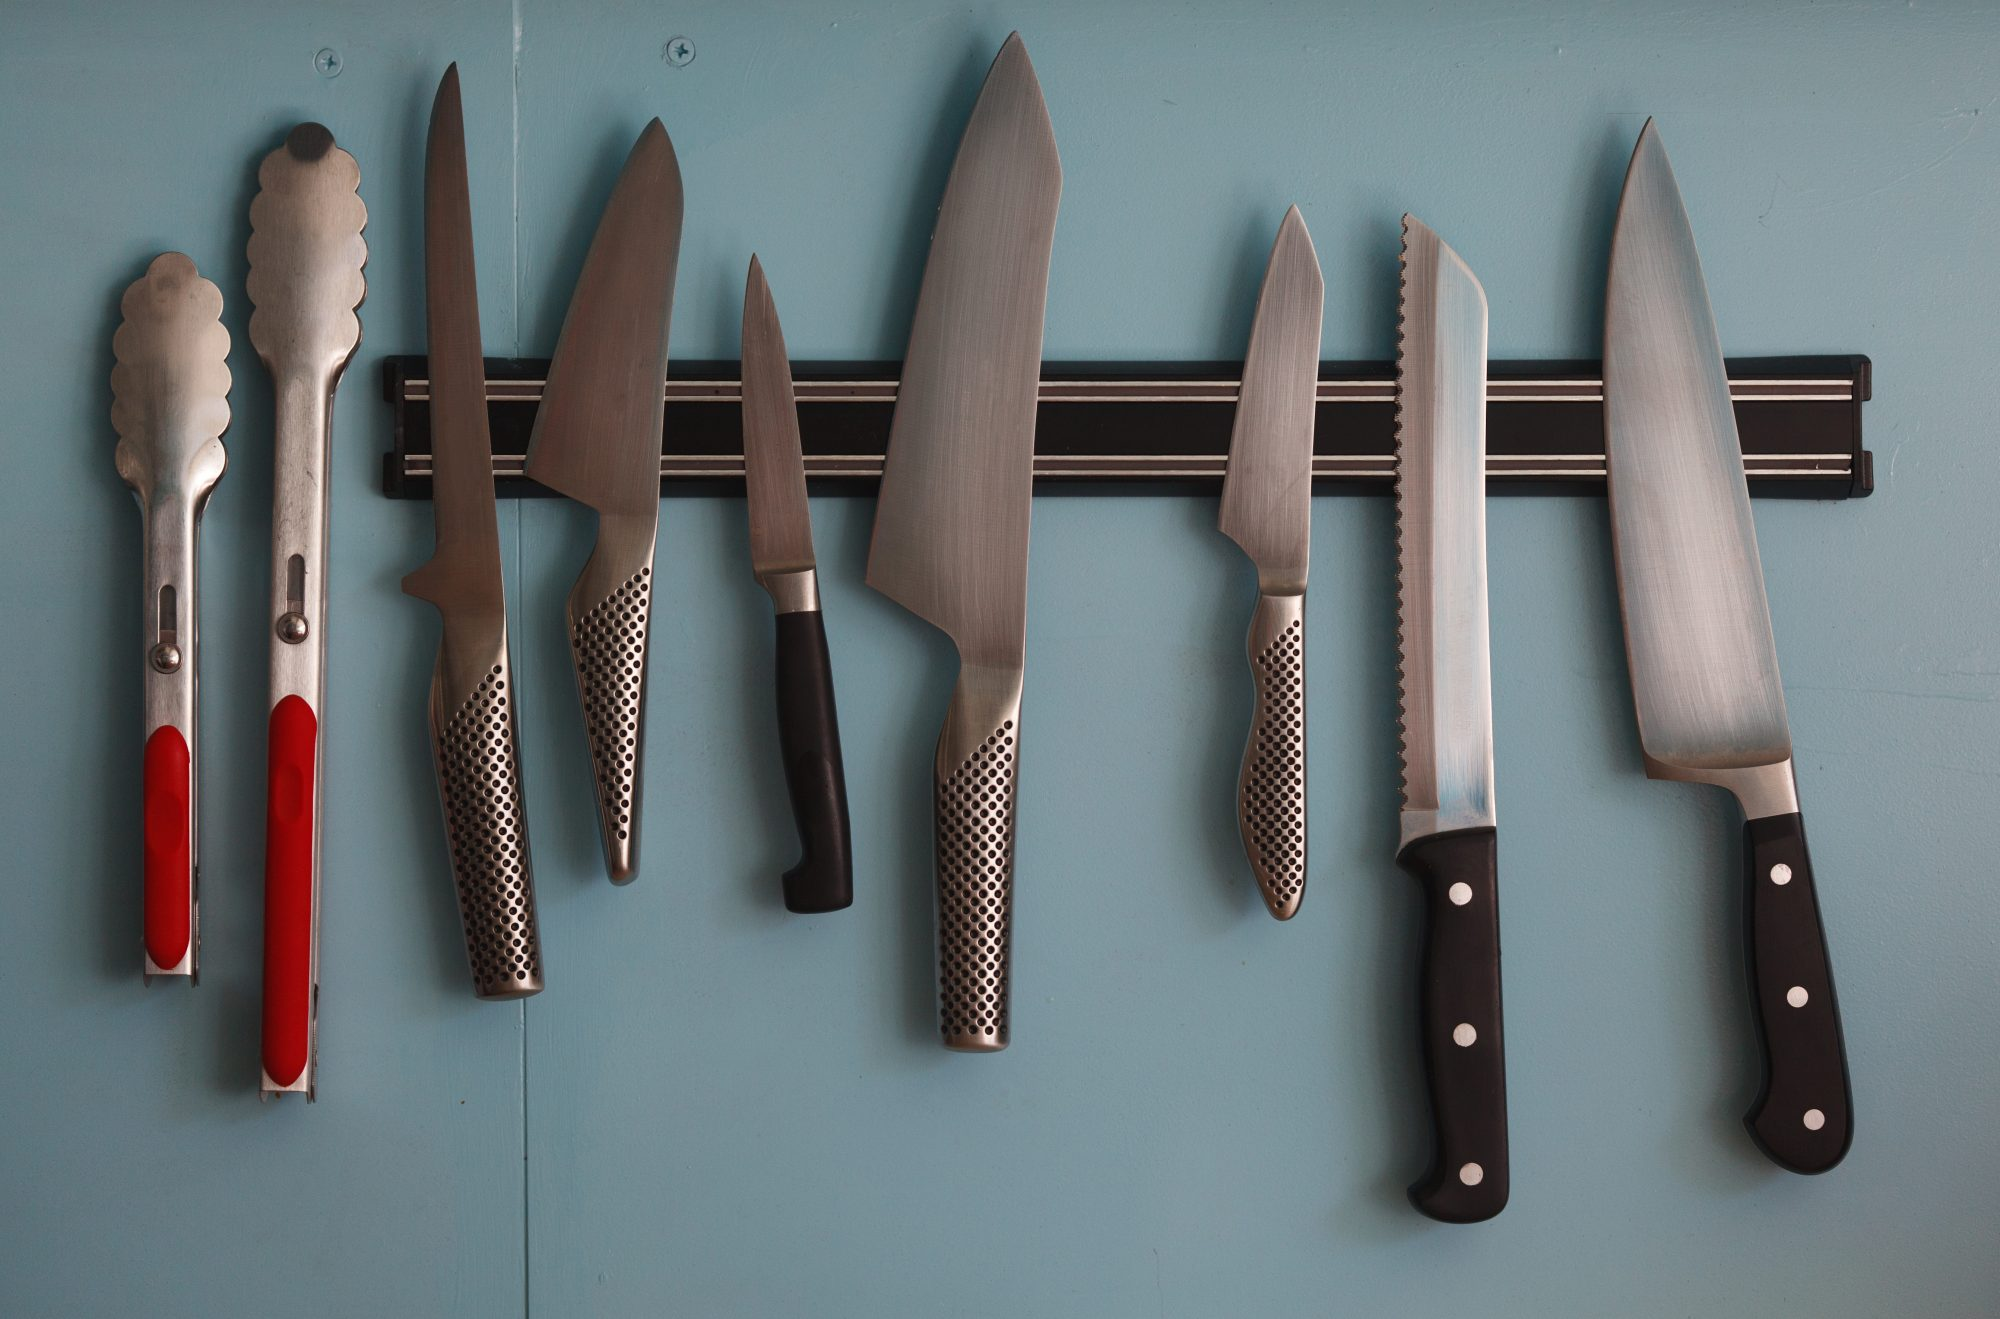 Caring for your knives